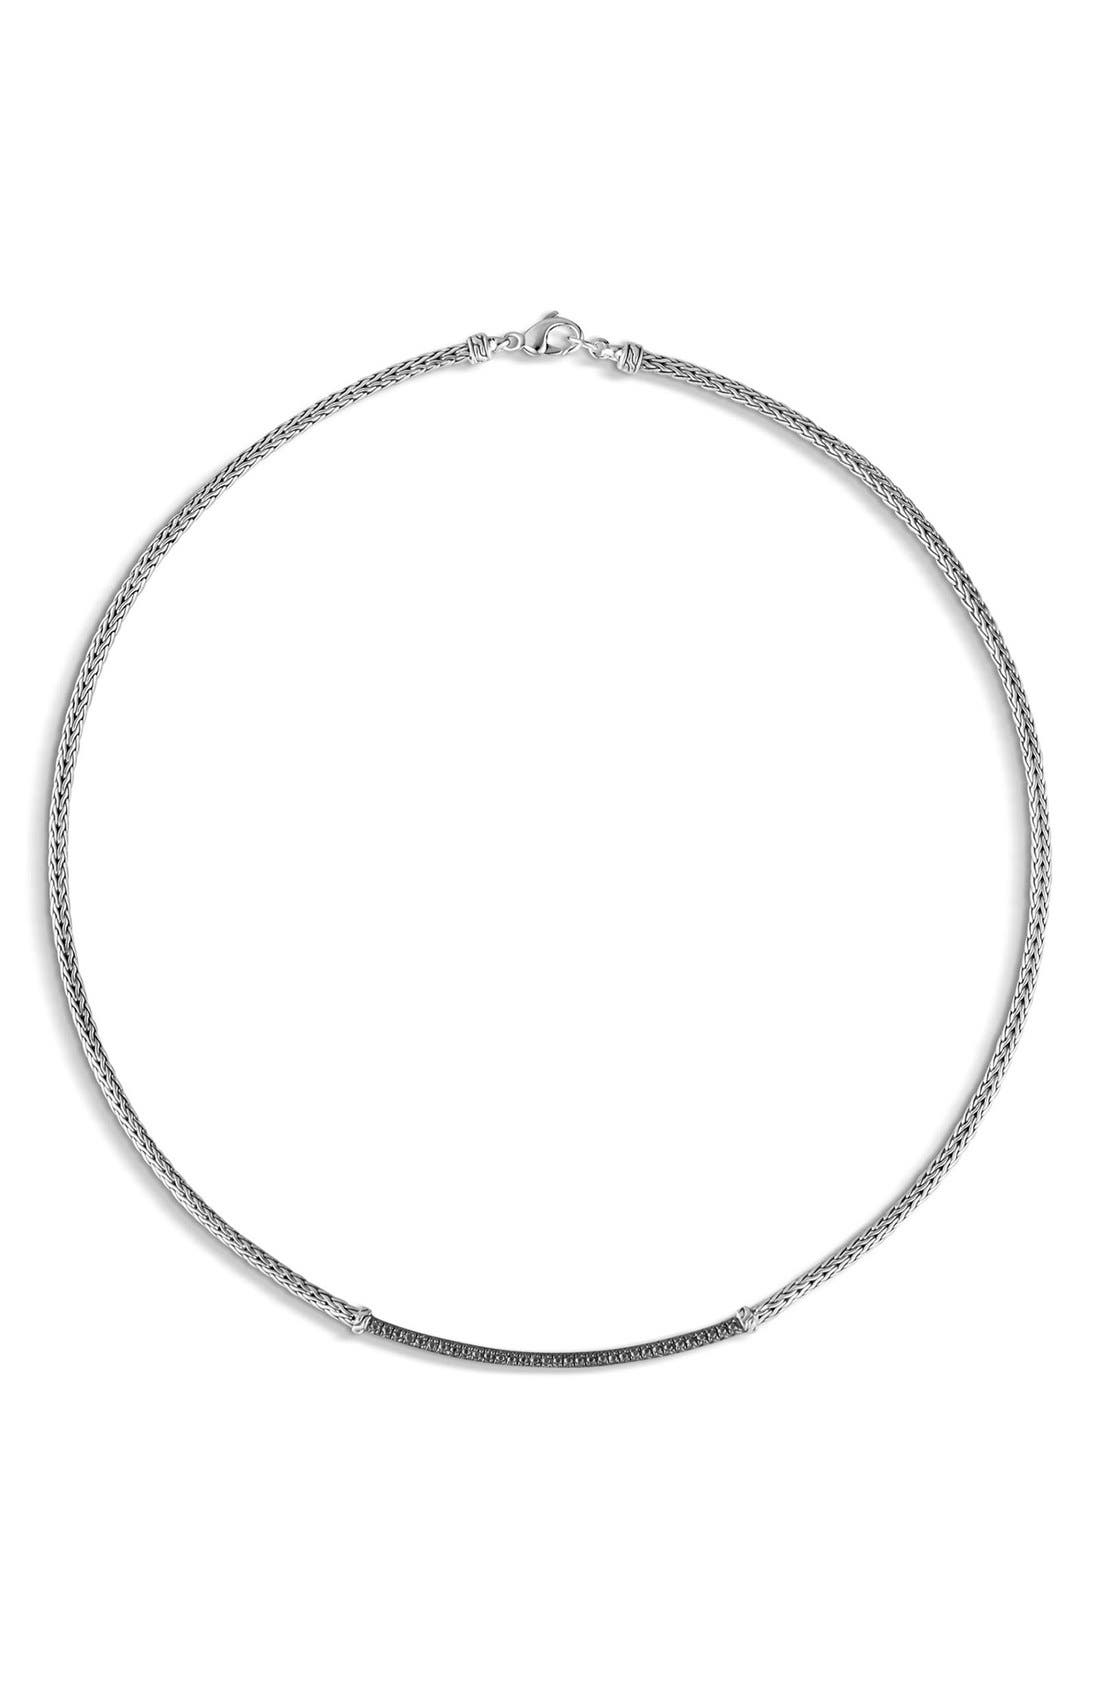 John Hardy 'Classic Chain' Collar Necklace